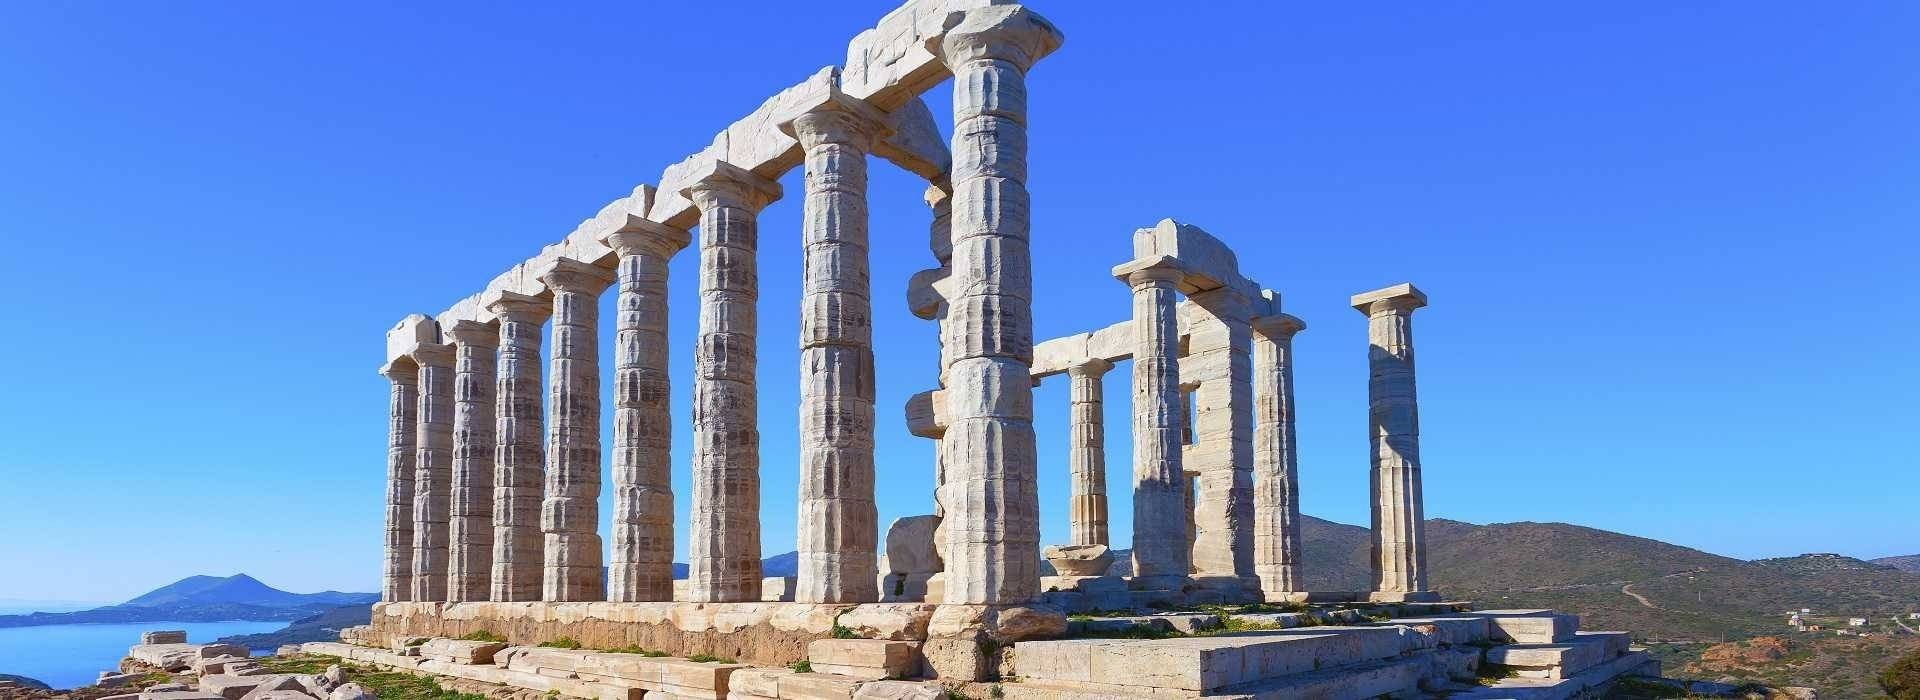 Cape Sounio and Temple of Poseidon Half Day Afternoon Experience